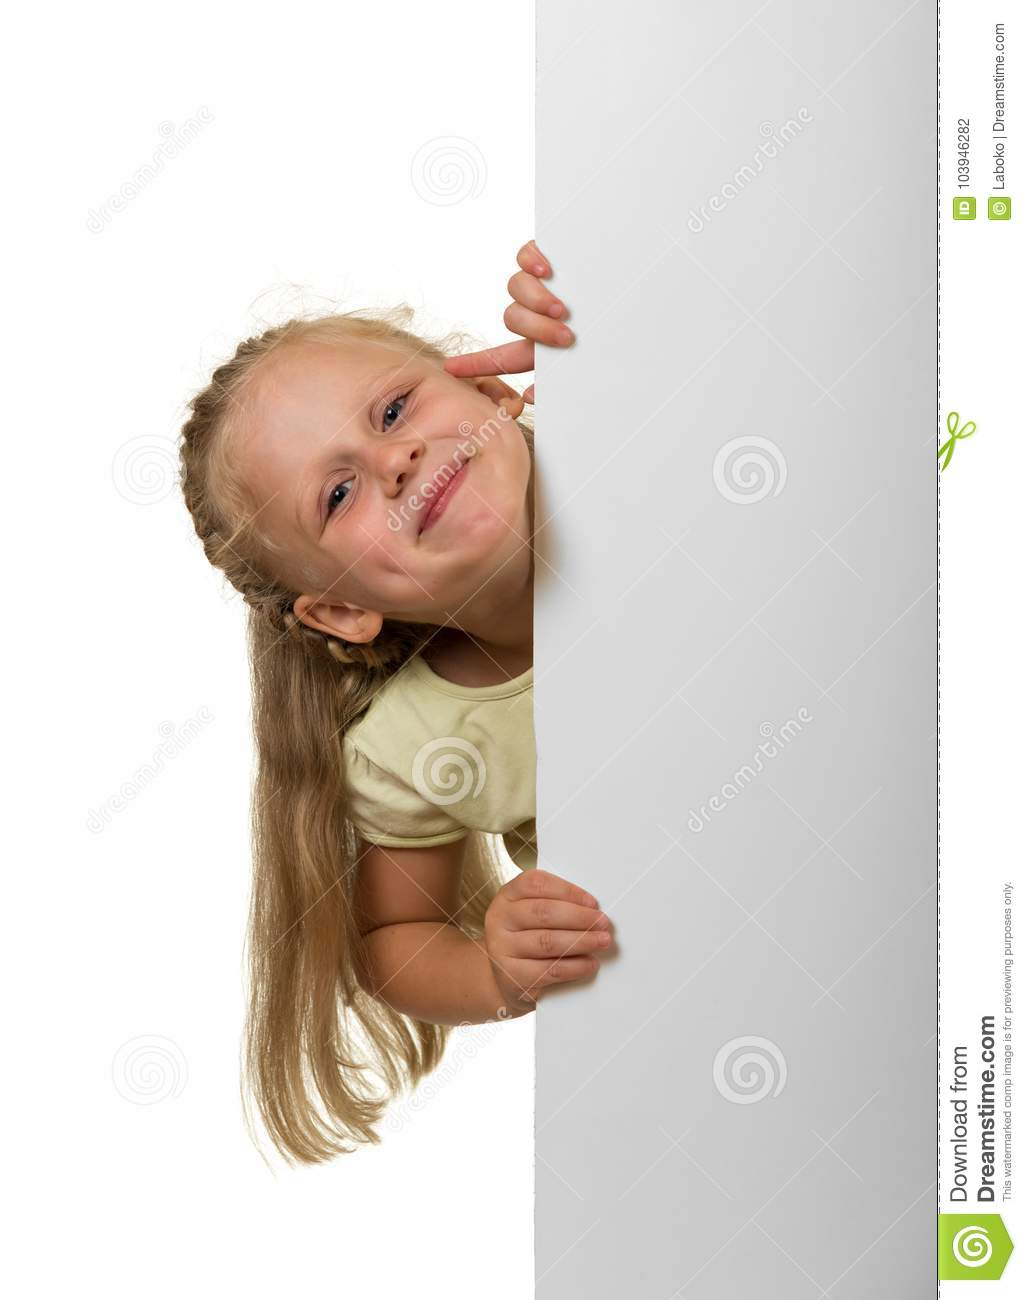 Little laughing girl peeking out from behind an empty banner, is